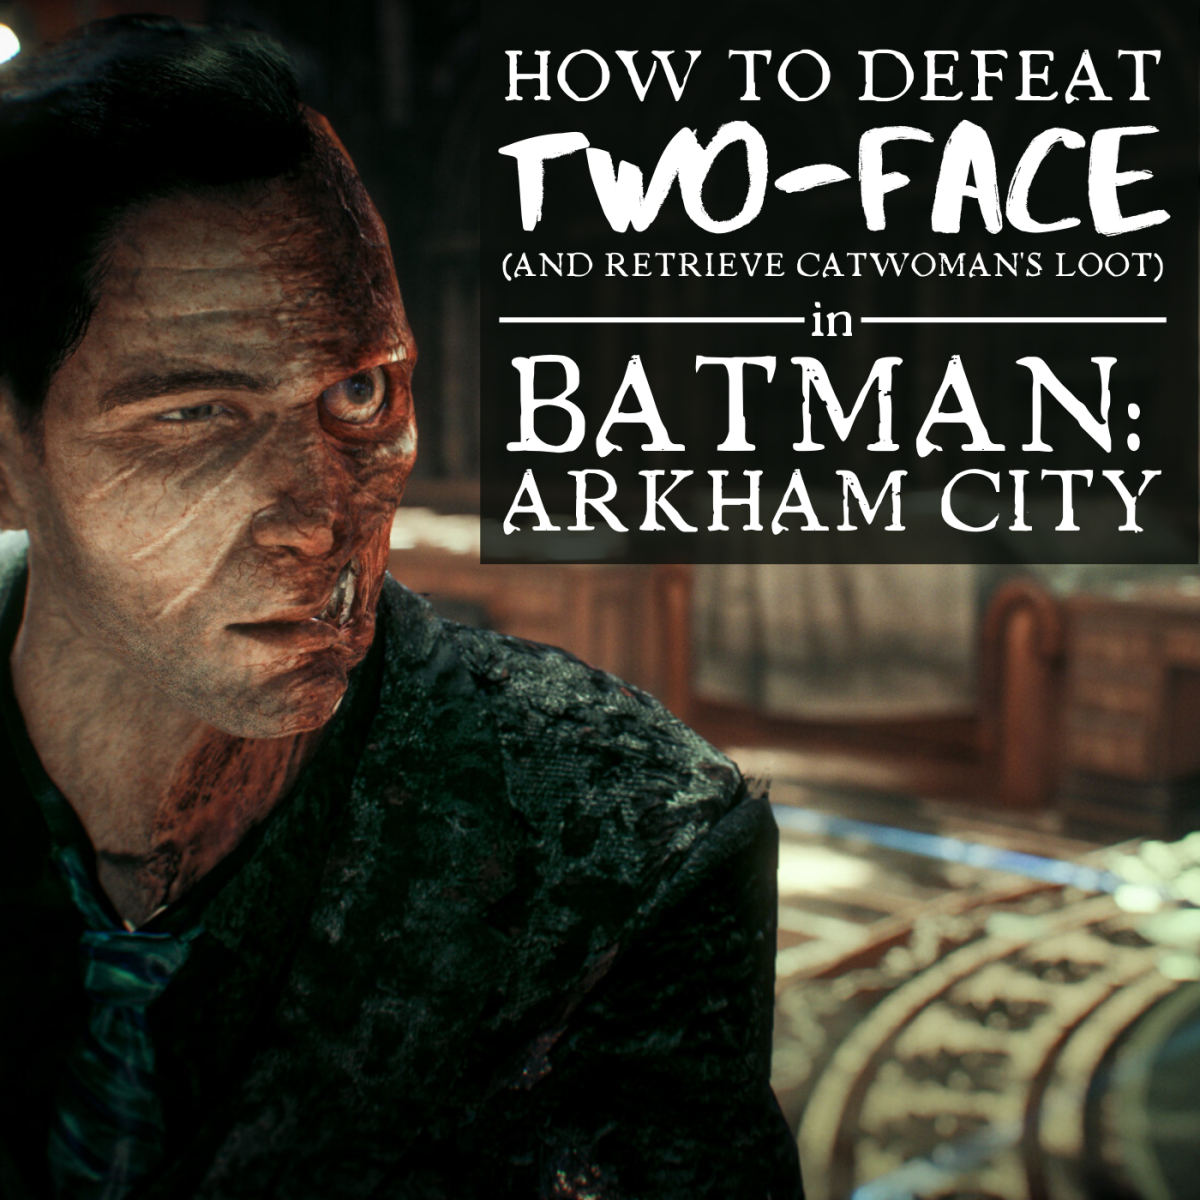 Making your way to Two-Face and defeating him while he is surrounded by thugs is no cakewalk. Read on to learn how it can be done.